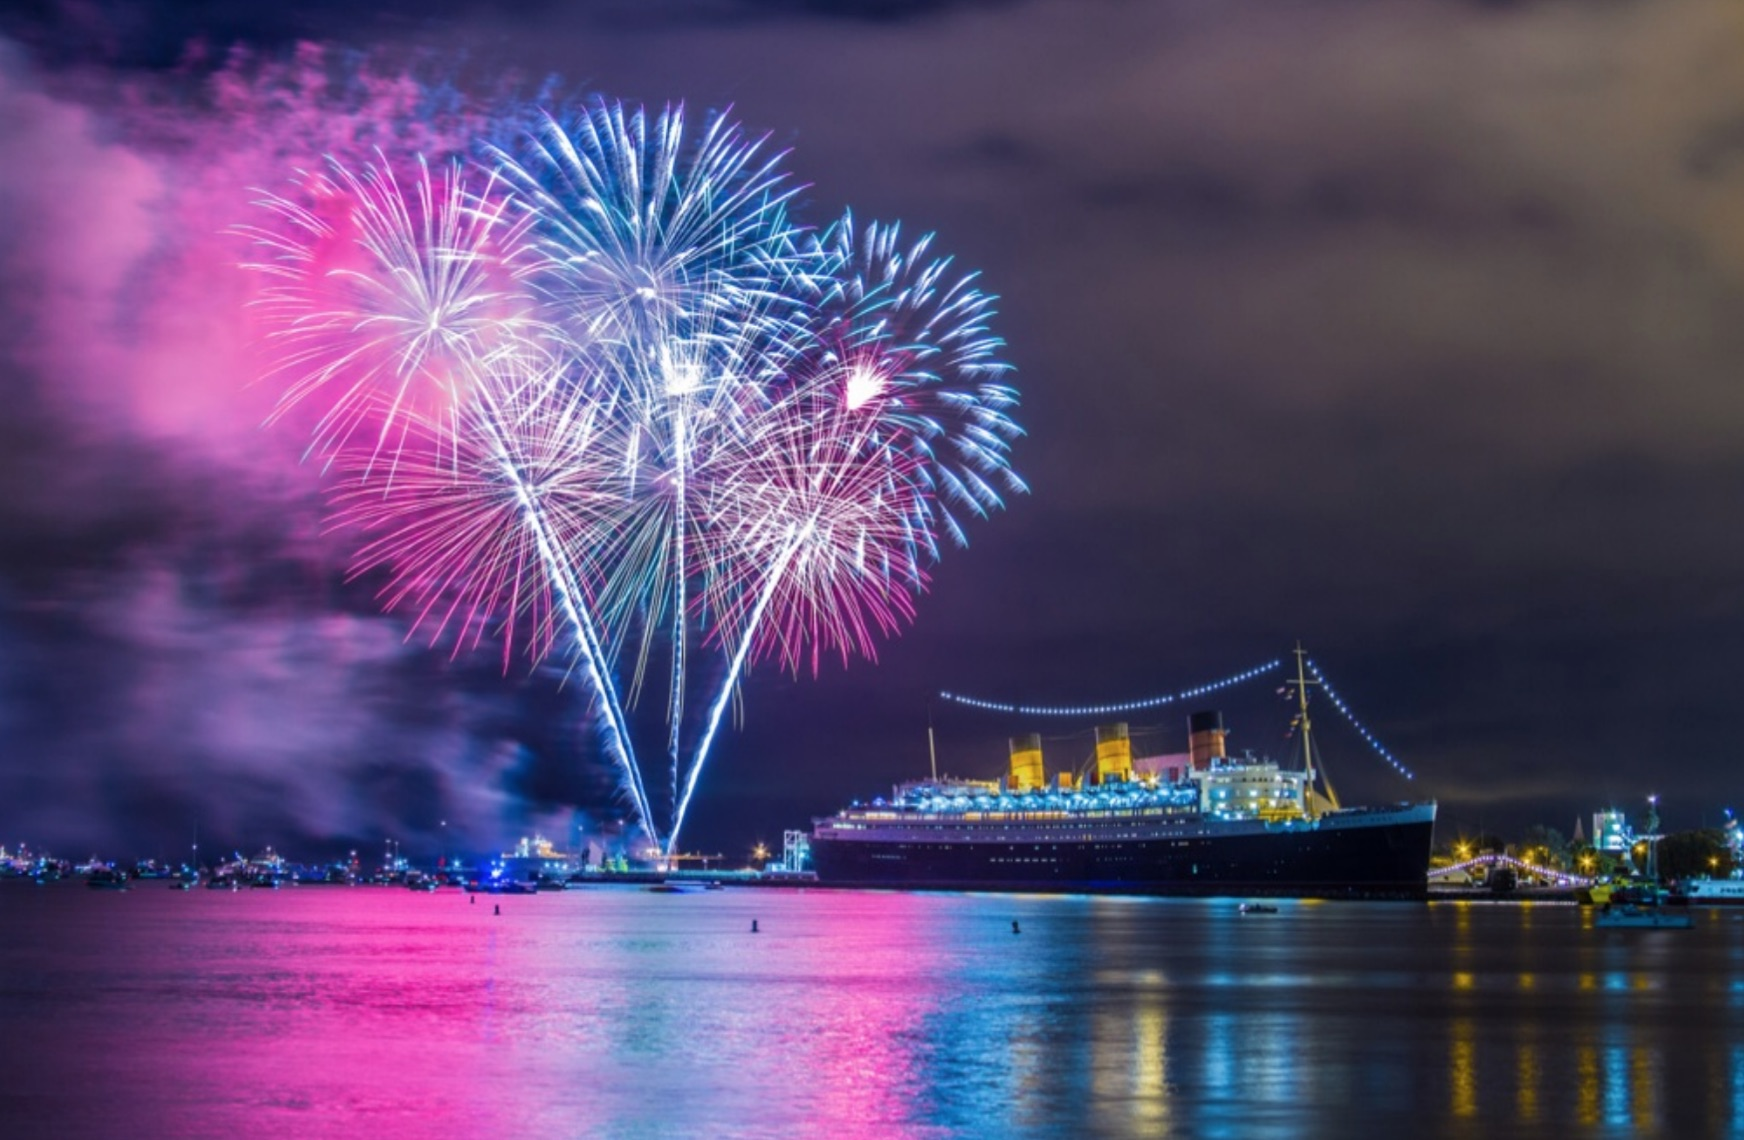 queen Mary, New Years eve 2018